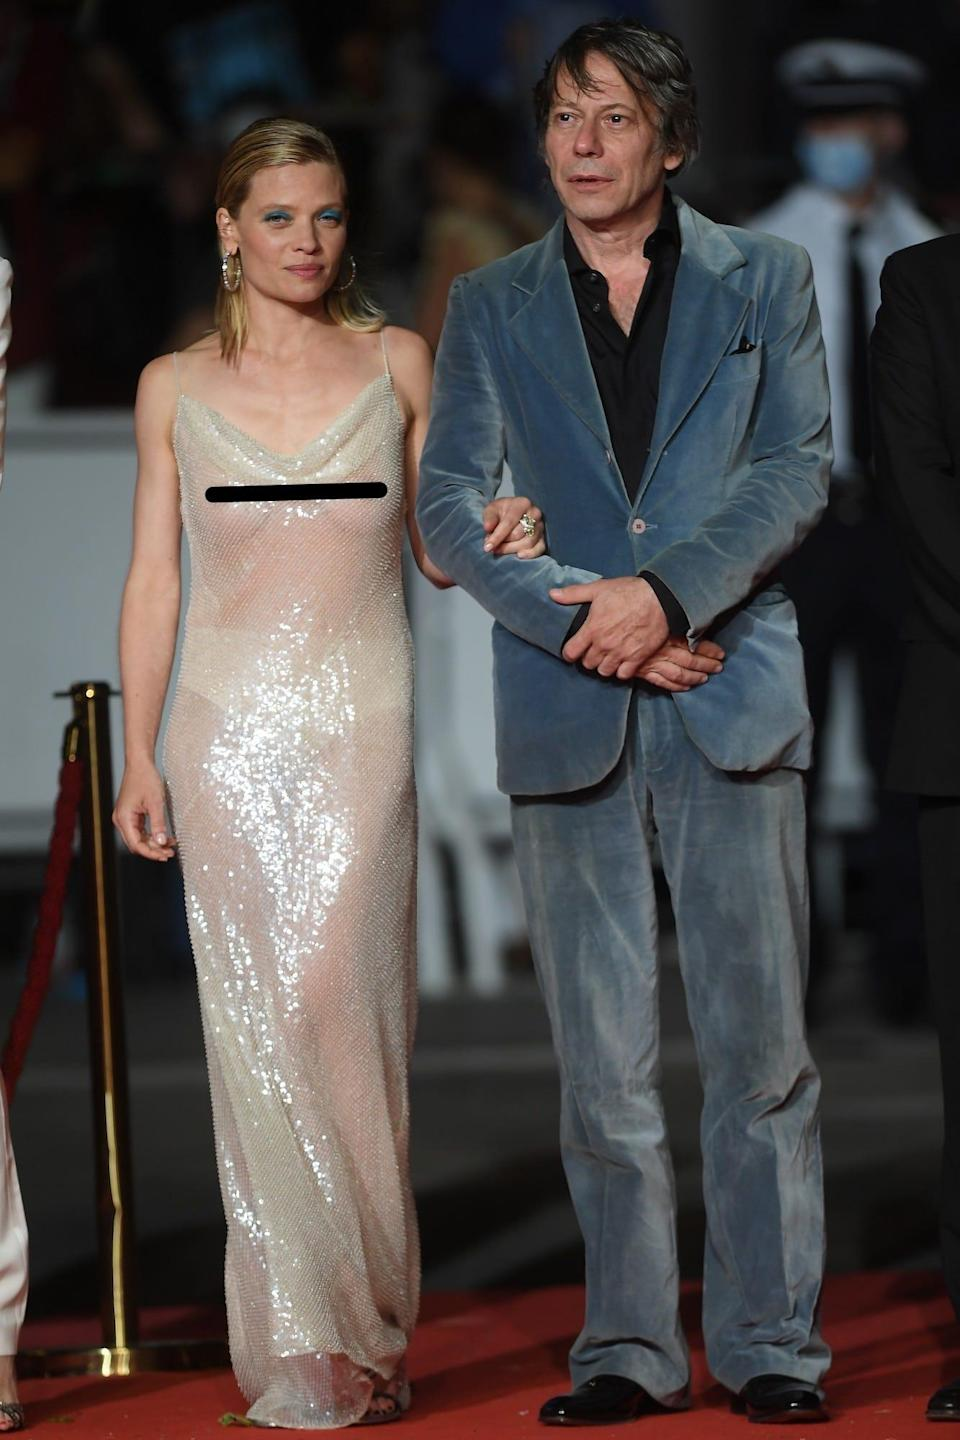 Melanie Thierry at the 2021 Cannes Film Festival.